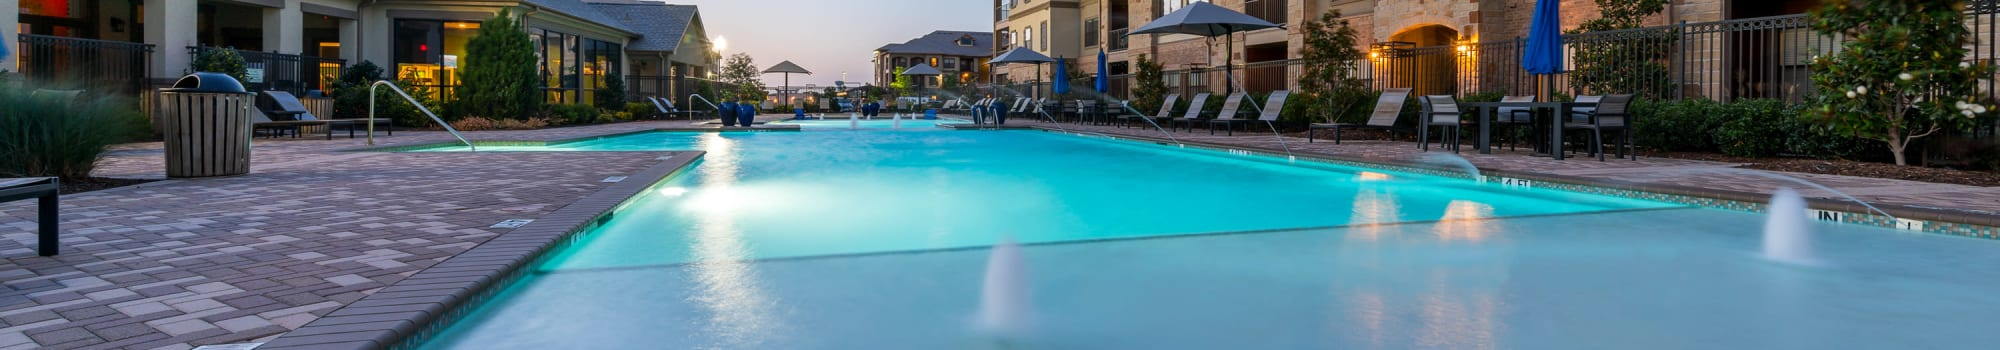 Amenities at Sorrel Phillips Creek Ranch in Frisco, Texas